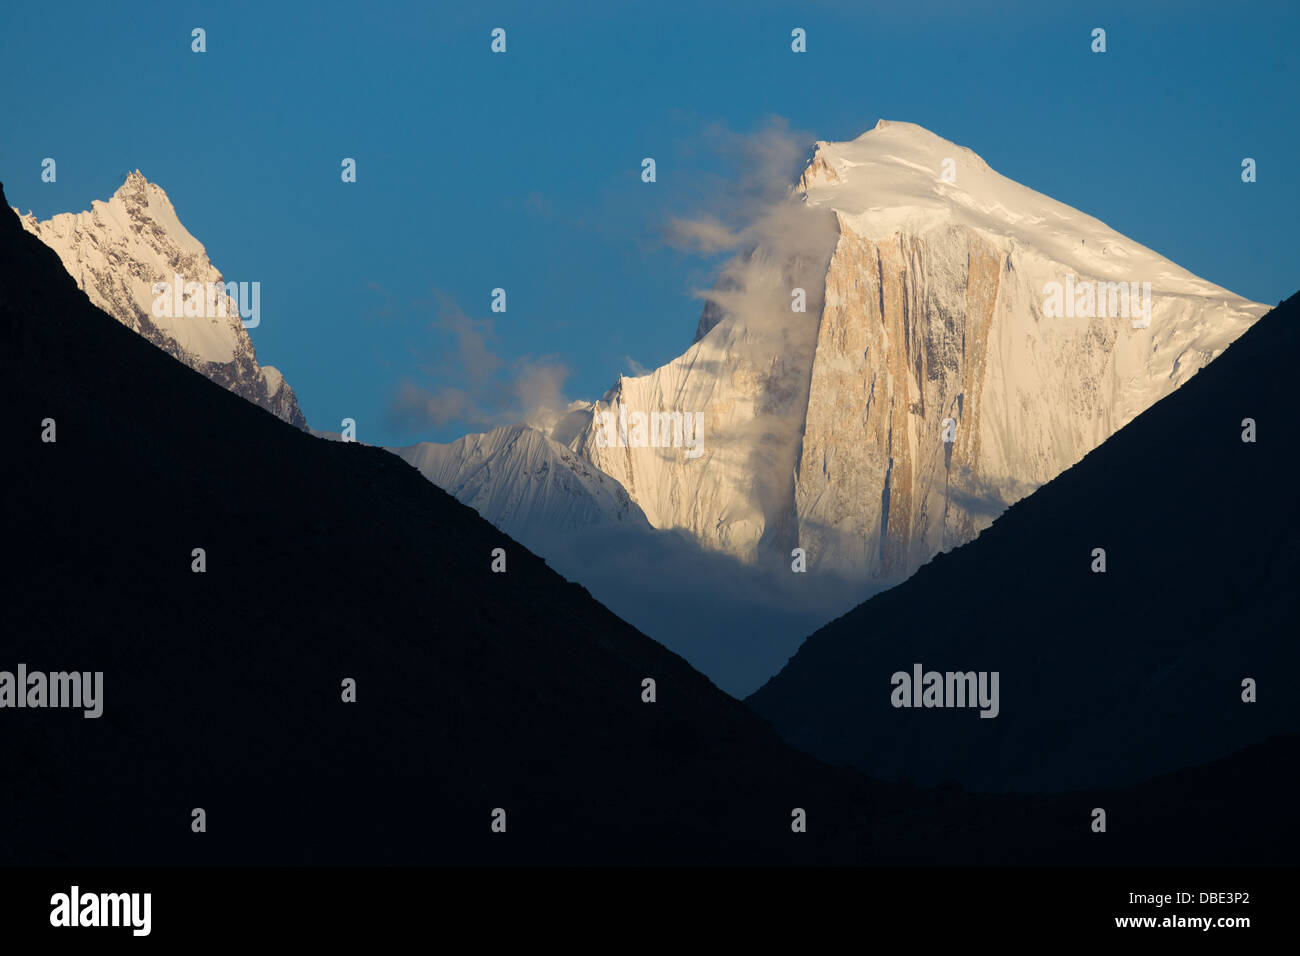 Spantik (Golden Peak) seen from Karimabad at sunset, Hunza Valley, Gilgit-Baltistan, Pakistan - Stock Image